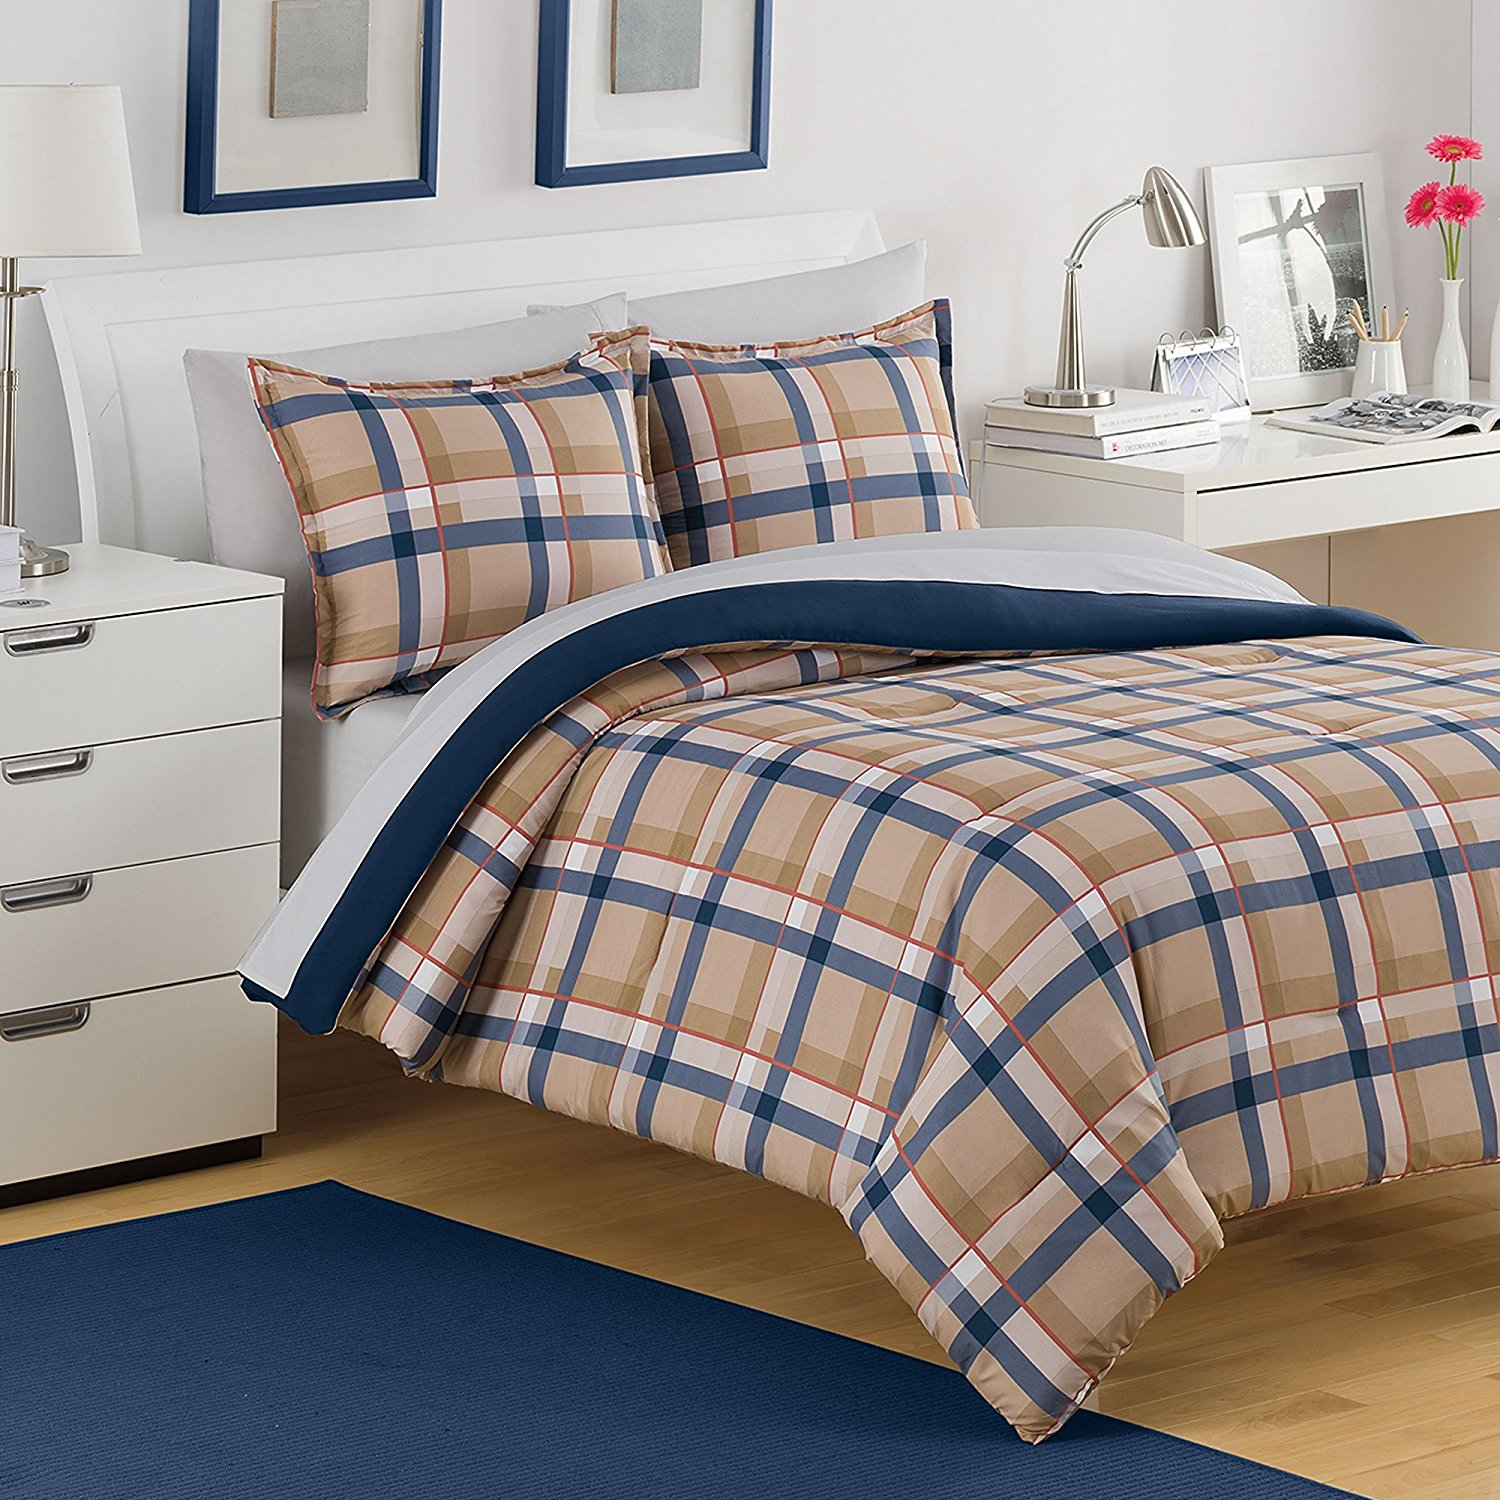 king co red aetherair sheets queen plaid walmart comforter pla blue asli